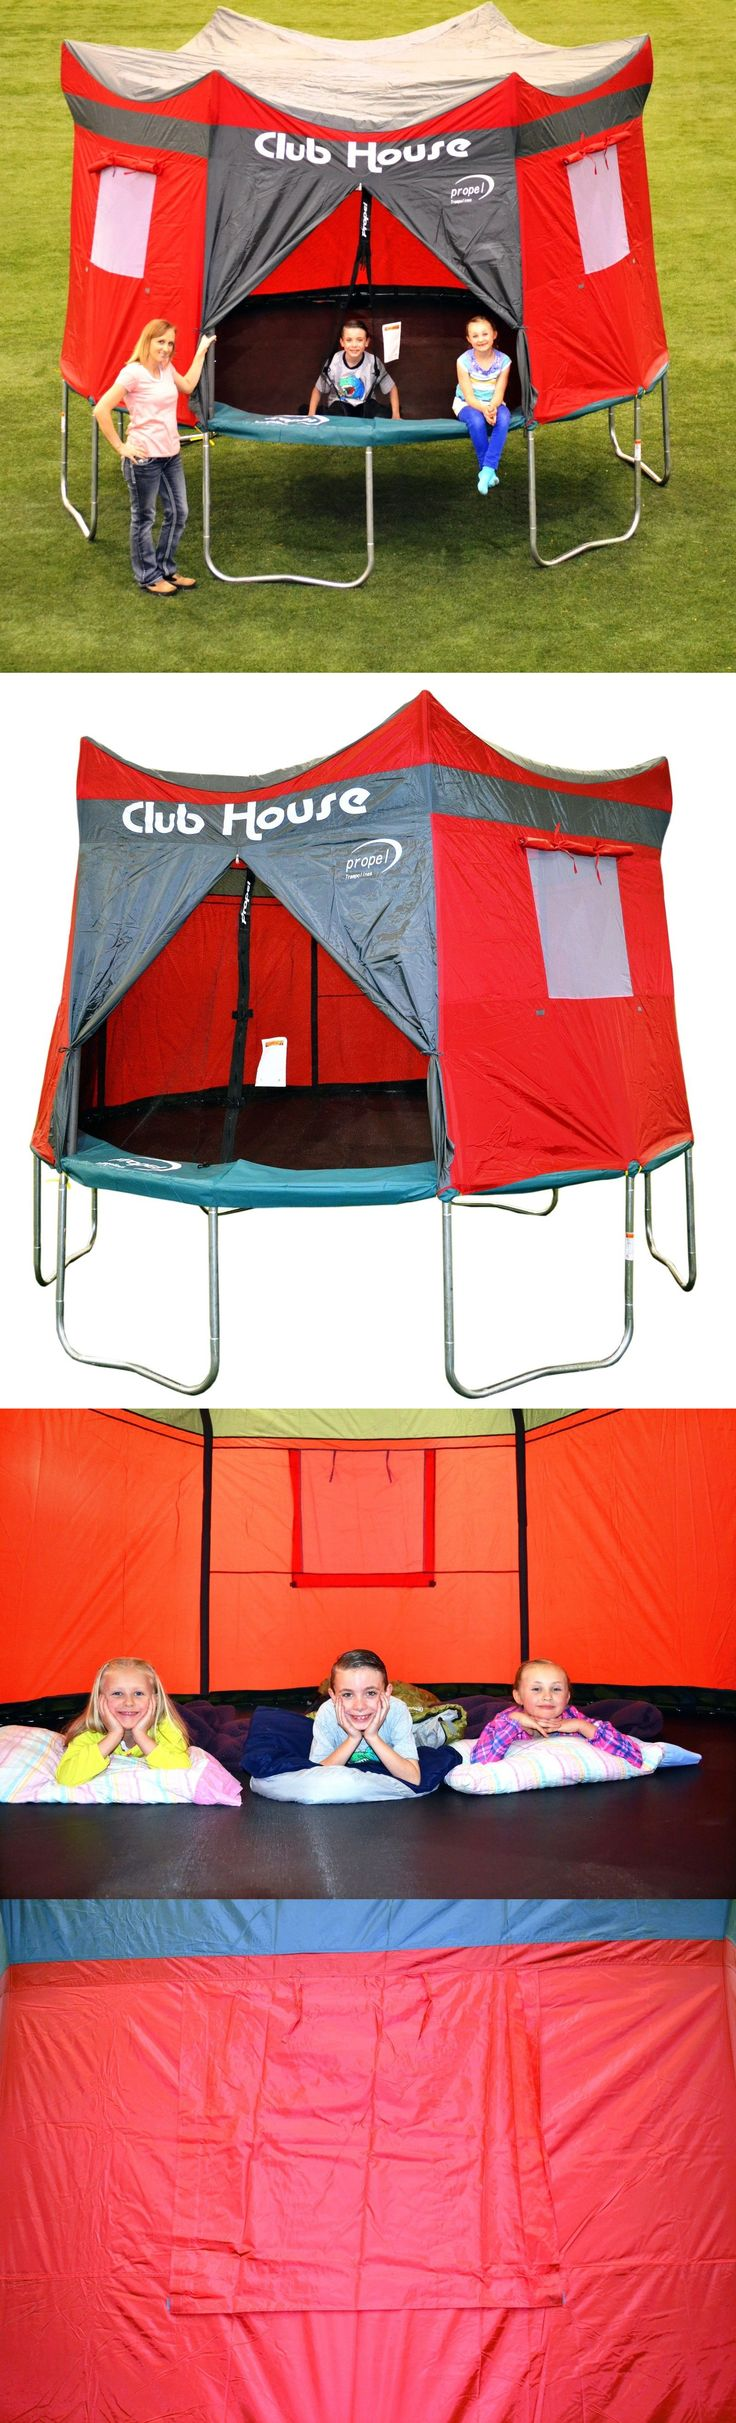 Trampolines 145999: Propel Trampolines 12 Trampoline Clubhouse Tent Accessory Kit Red Fast Shipping -> BUY IT NOW ONLY: $75.75 on eBay!